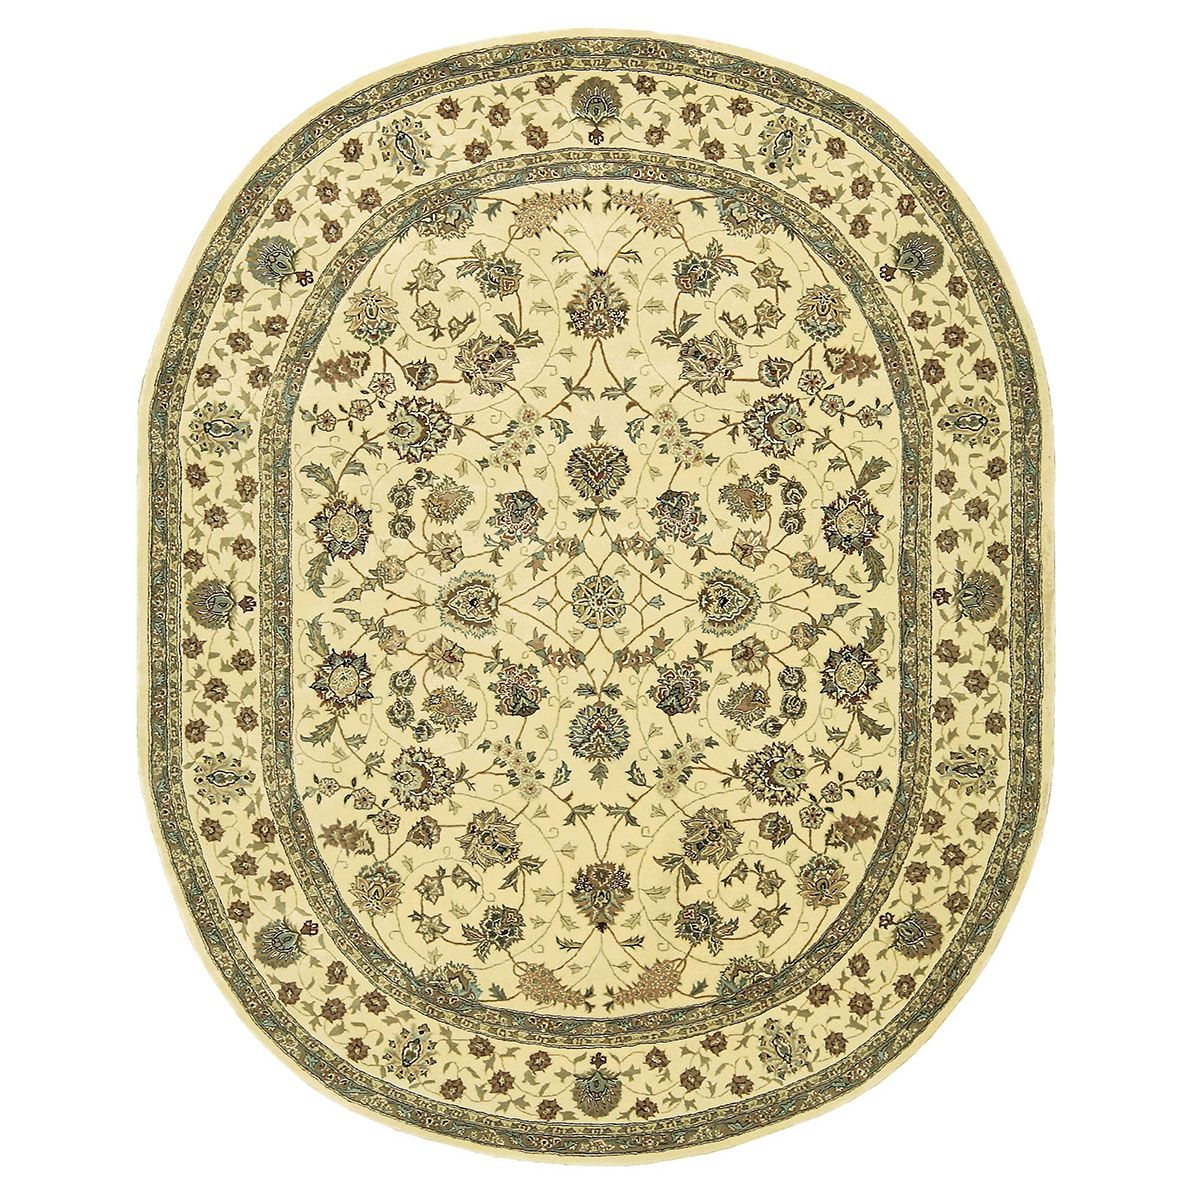 Nourision Nourison 2000 Area Rug Collection 86138